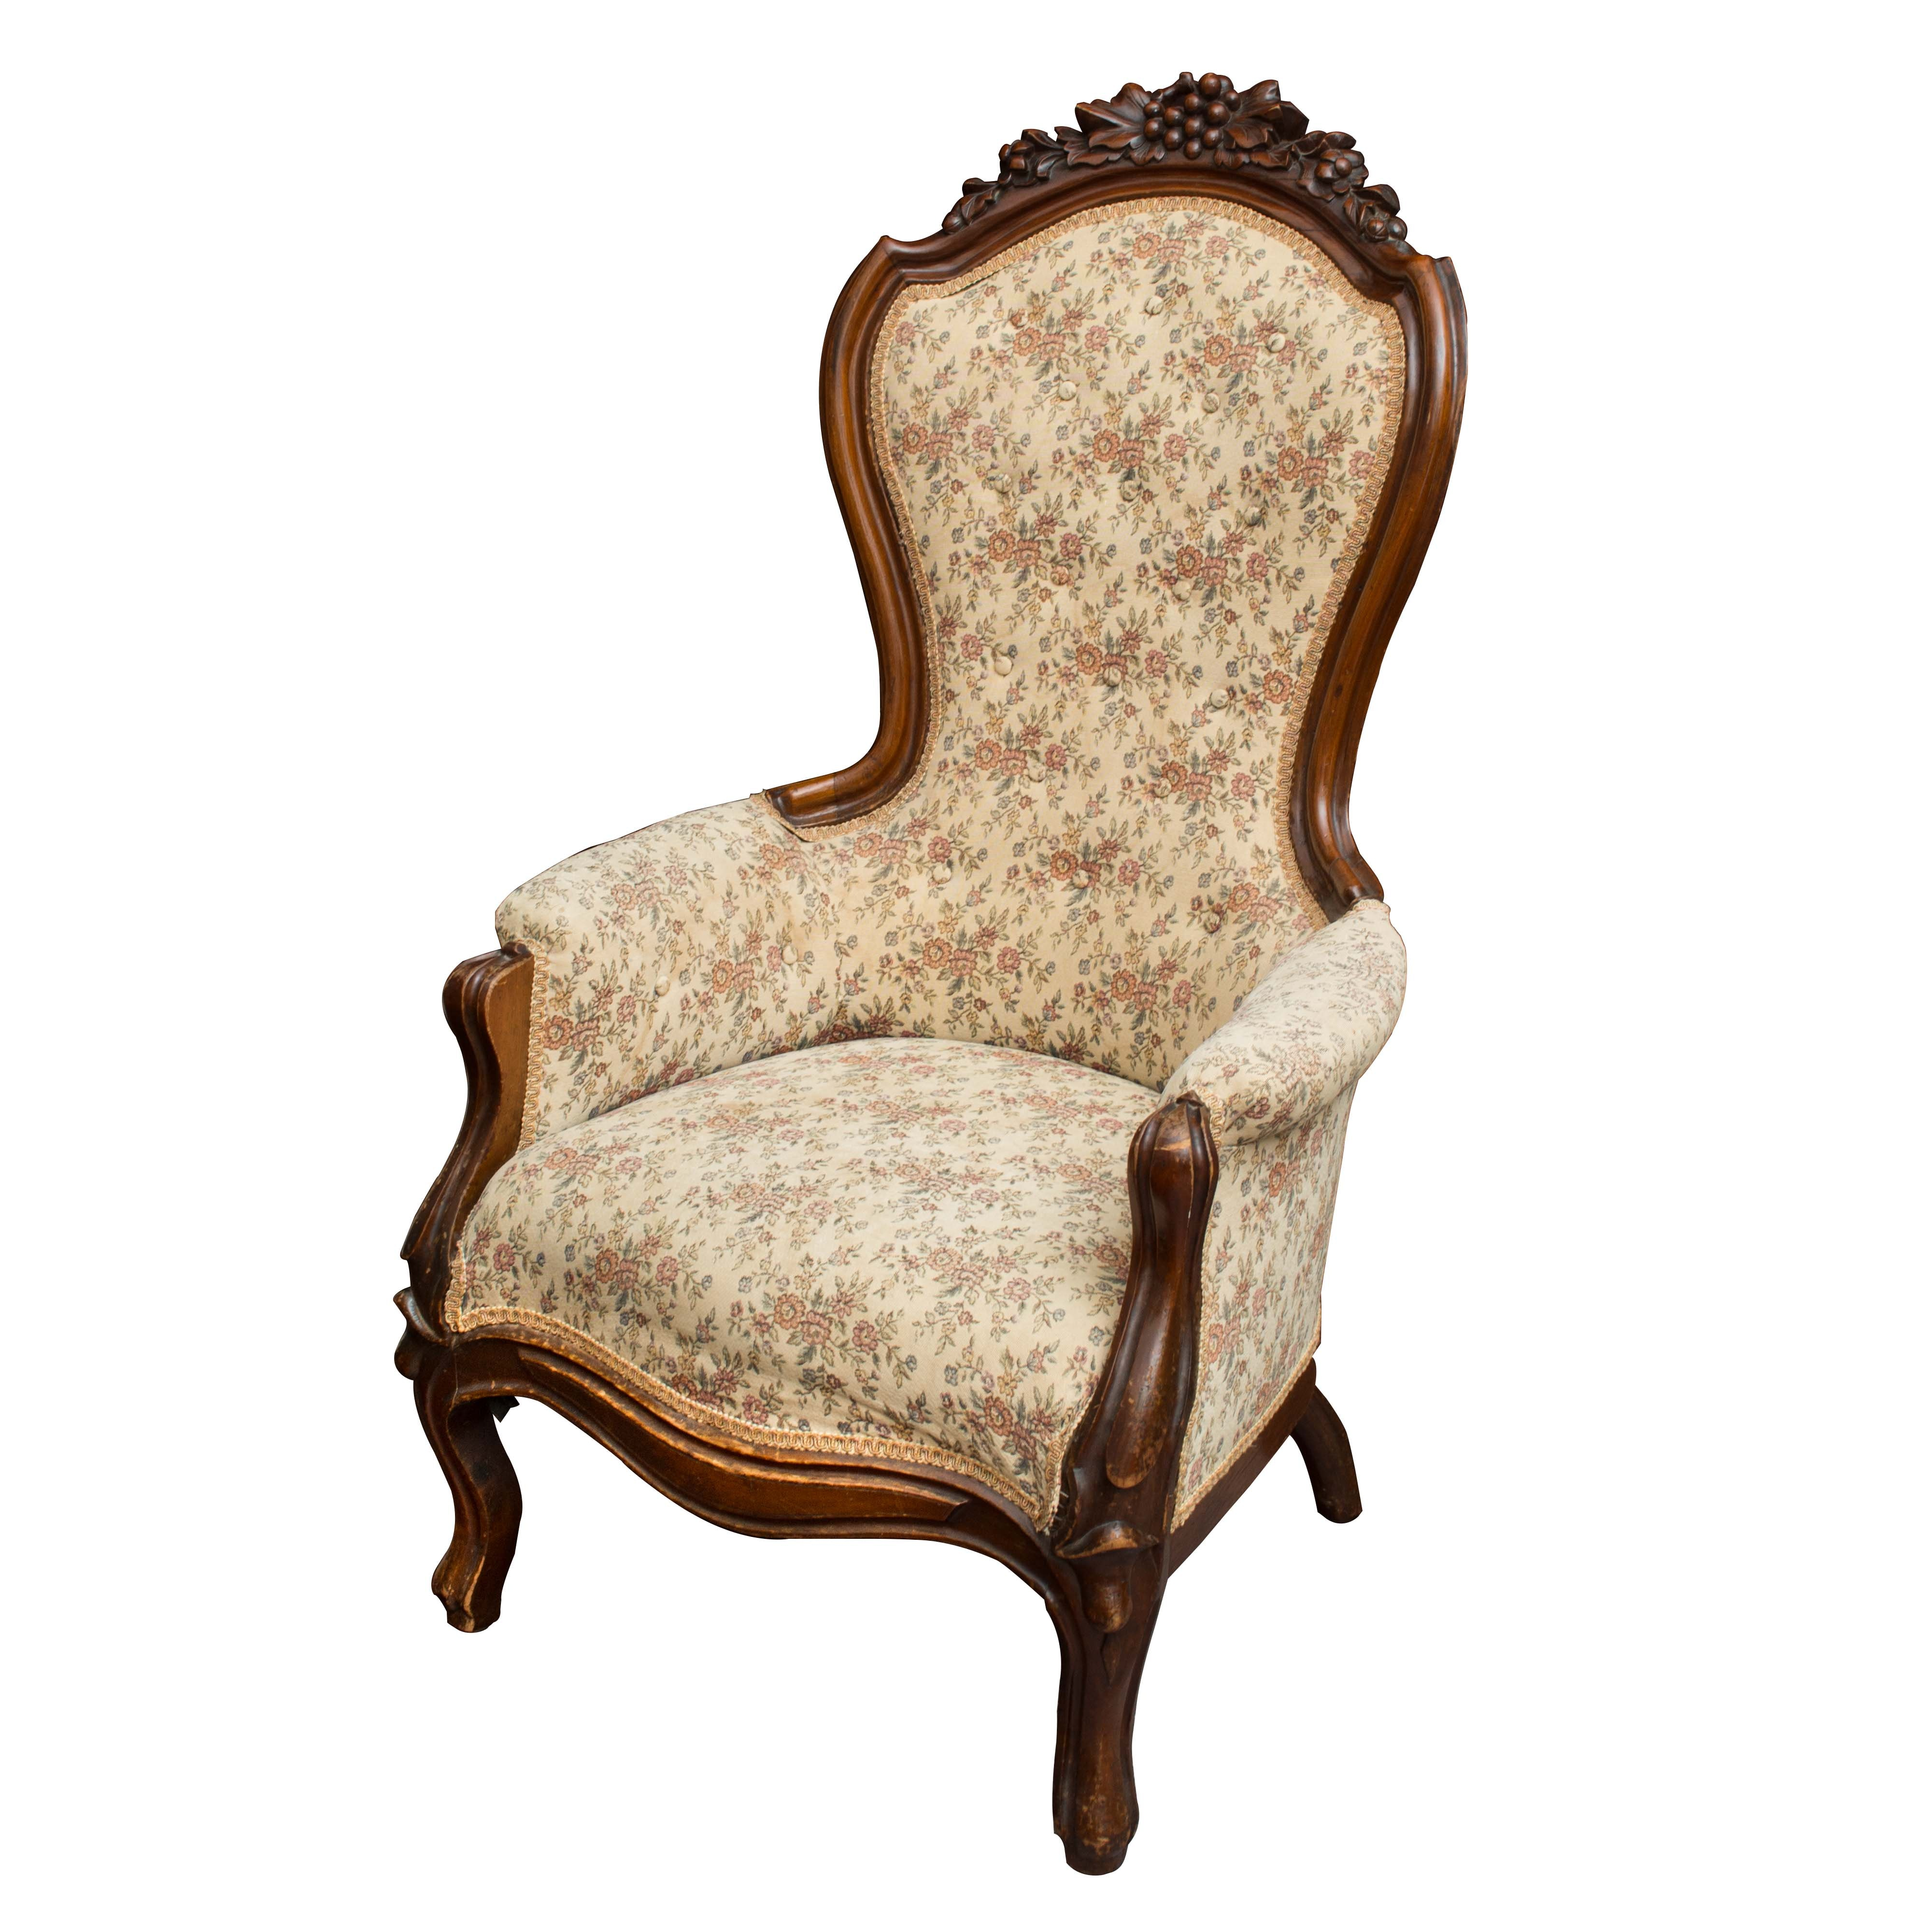 Victorian Style Upholstered Armchair with Floral Print